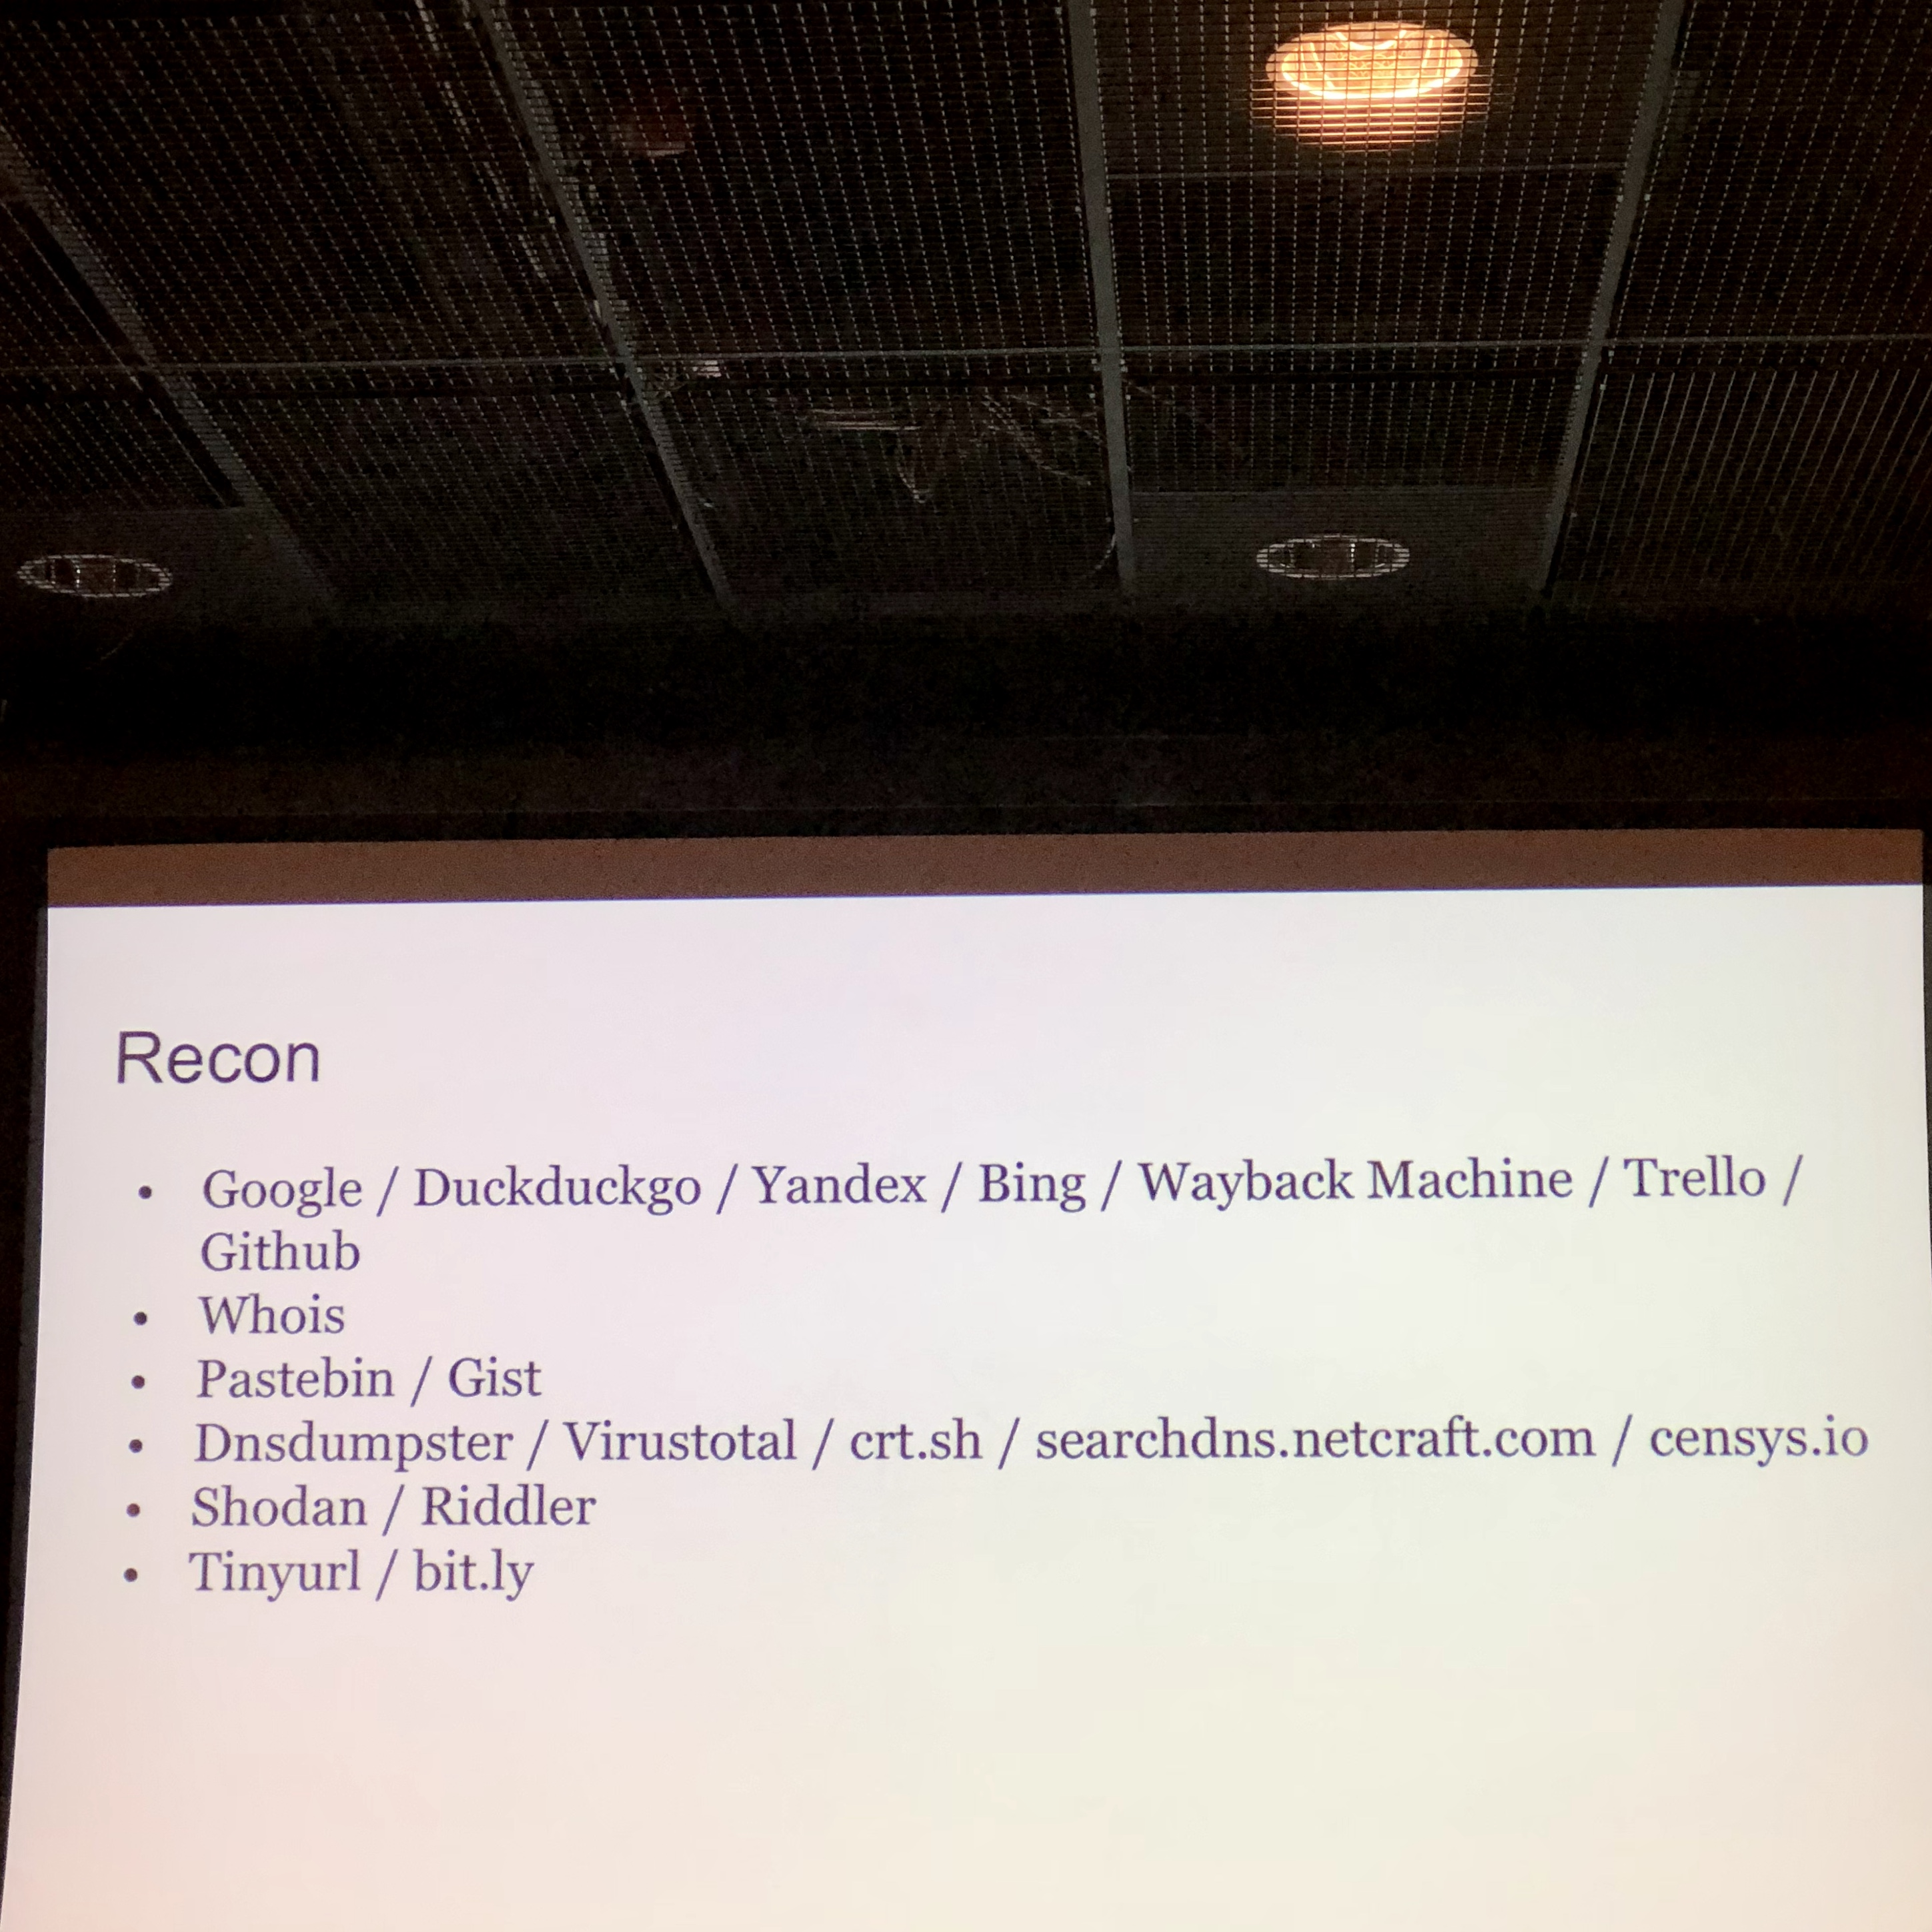 owasp Archives - Rule of Tech